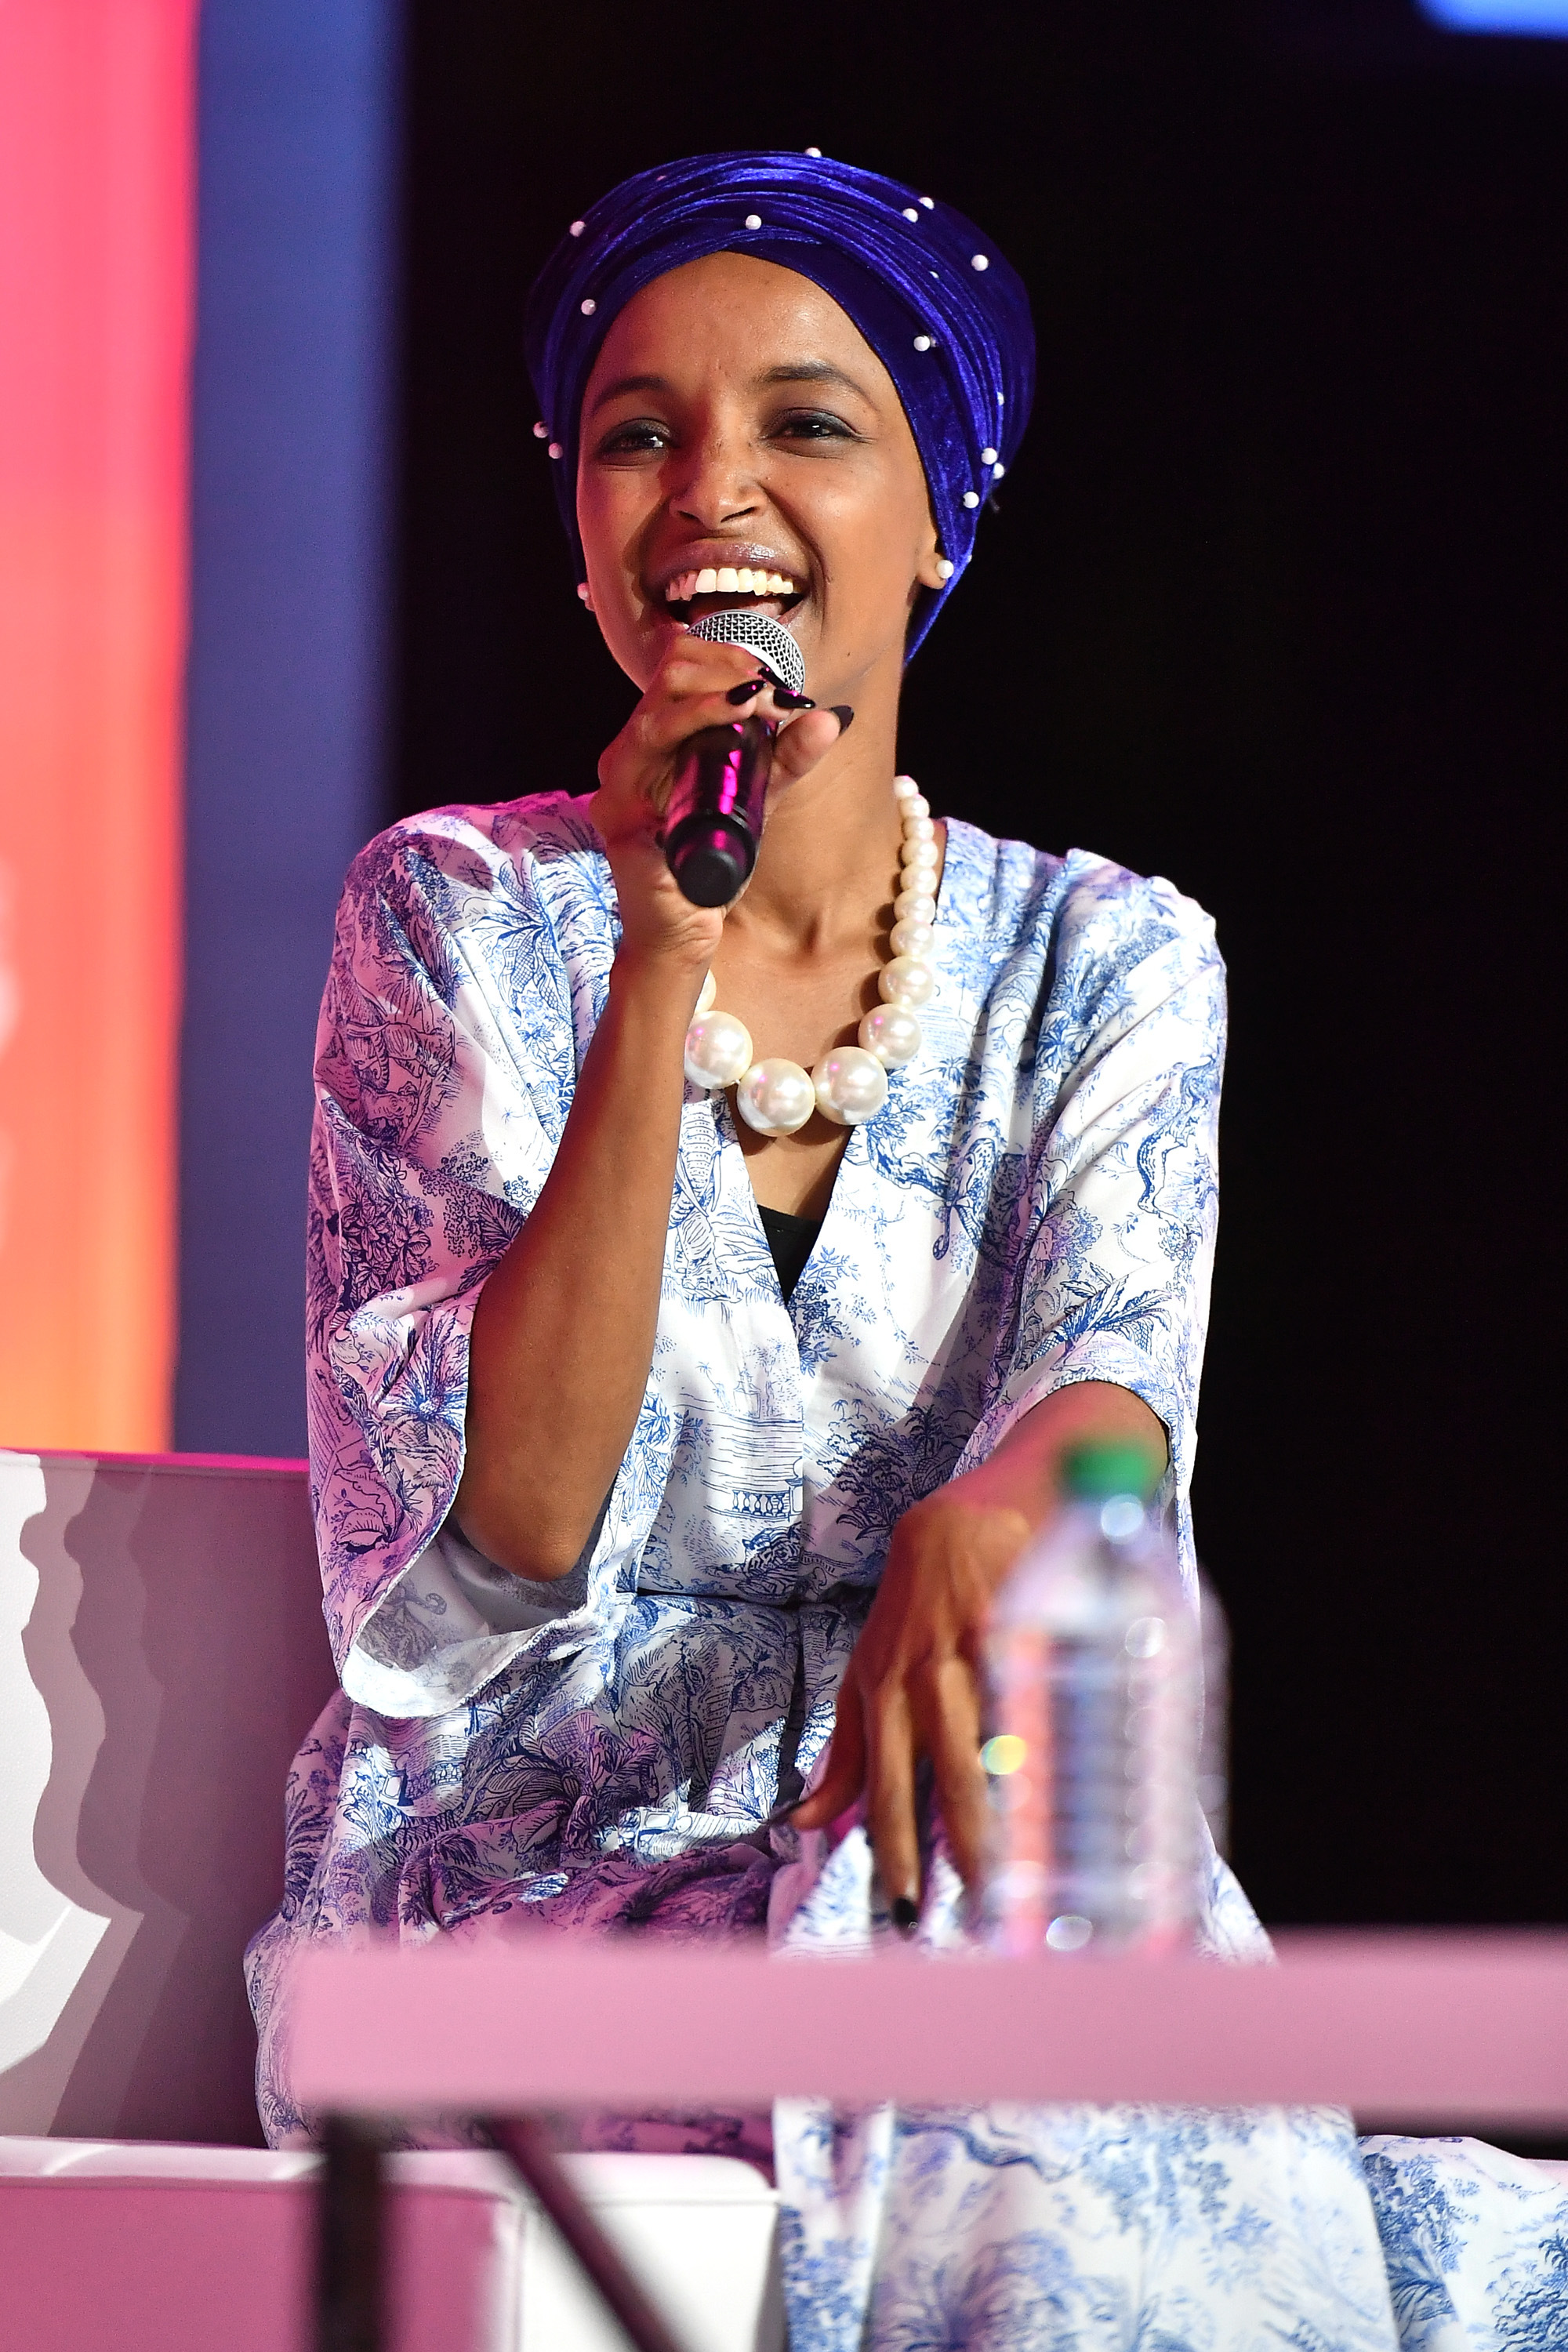 Congresswoman Ilhan Omar speaks on stage at 2019 ESSENCE Festival Presented By Coca-Cola at Ernest N. Morial Convention Center on July 06, 2019 in New Orleans, Louisiana. (Photo by Paras Griffin/Getty Images for ESSENCE)